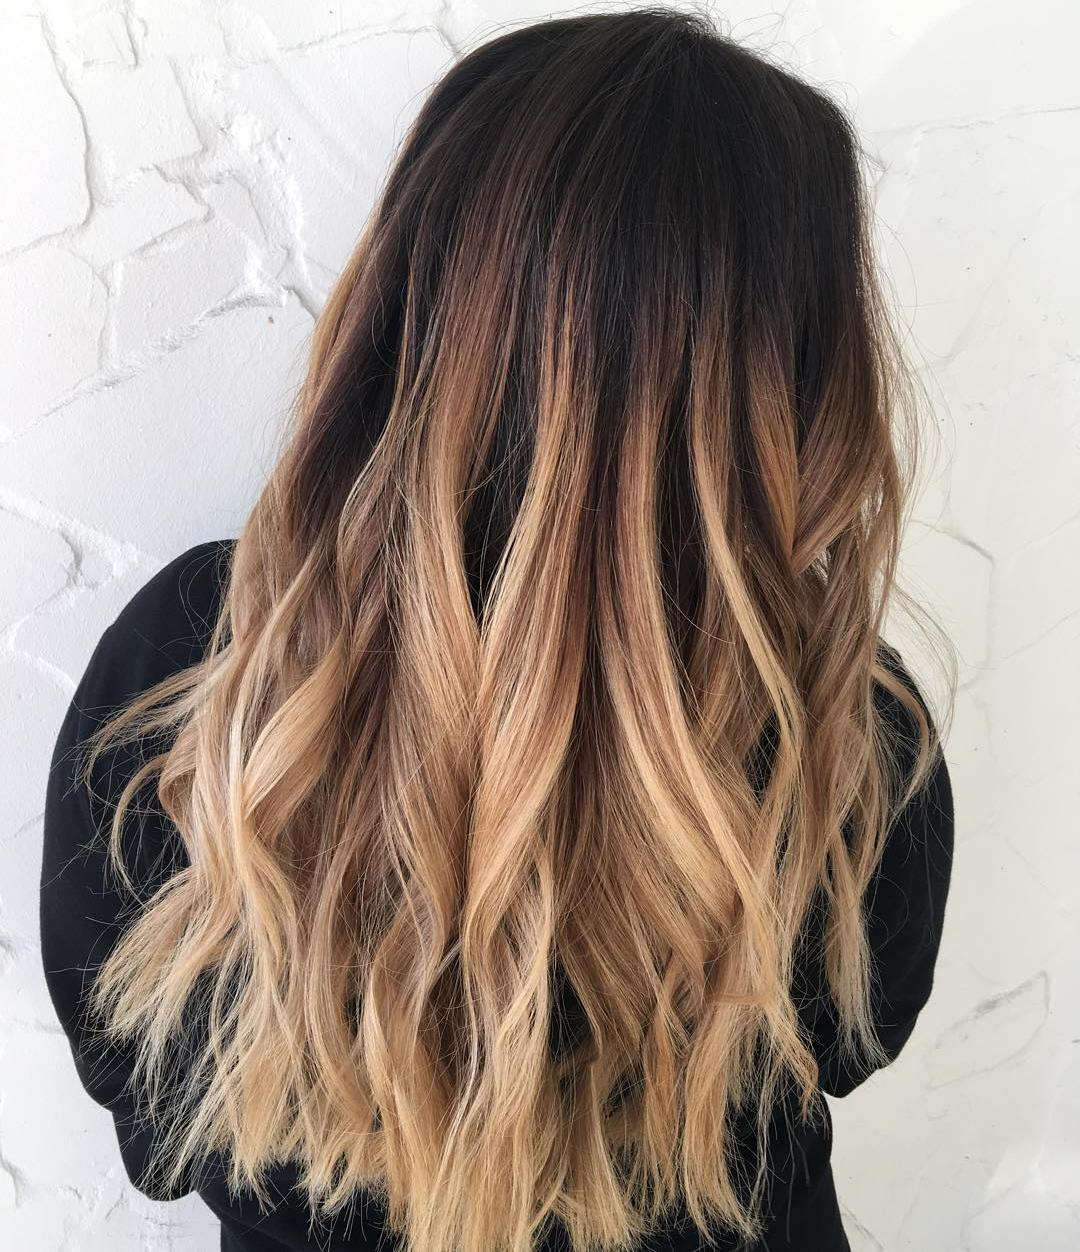 60 Best Ombre Hair Color Ideas For Blond Brown Red And - Haarfarbe Ombre